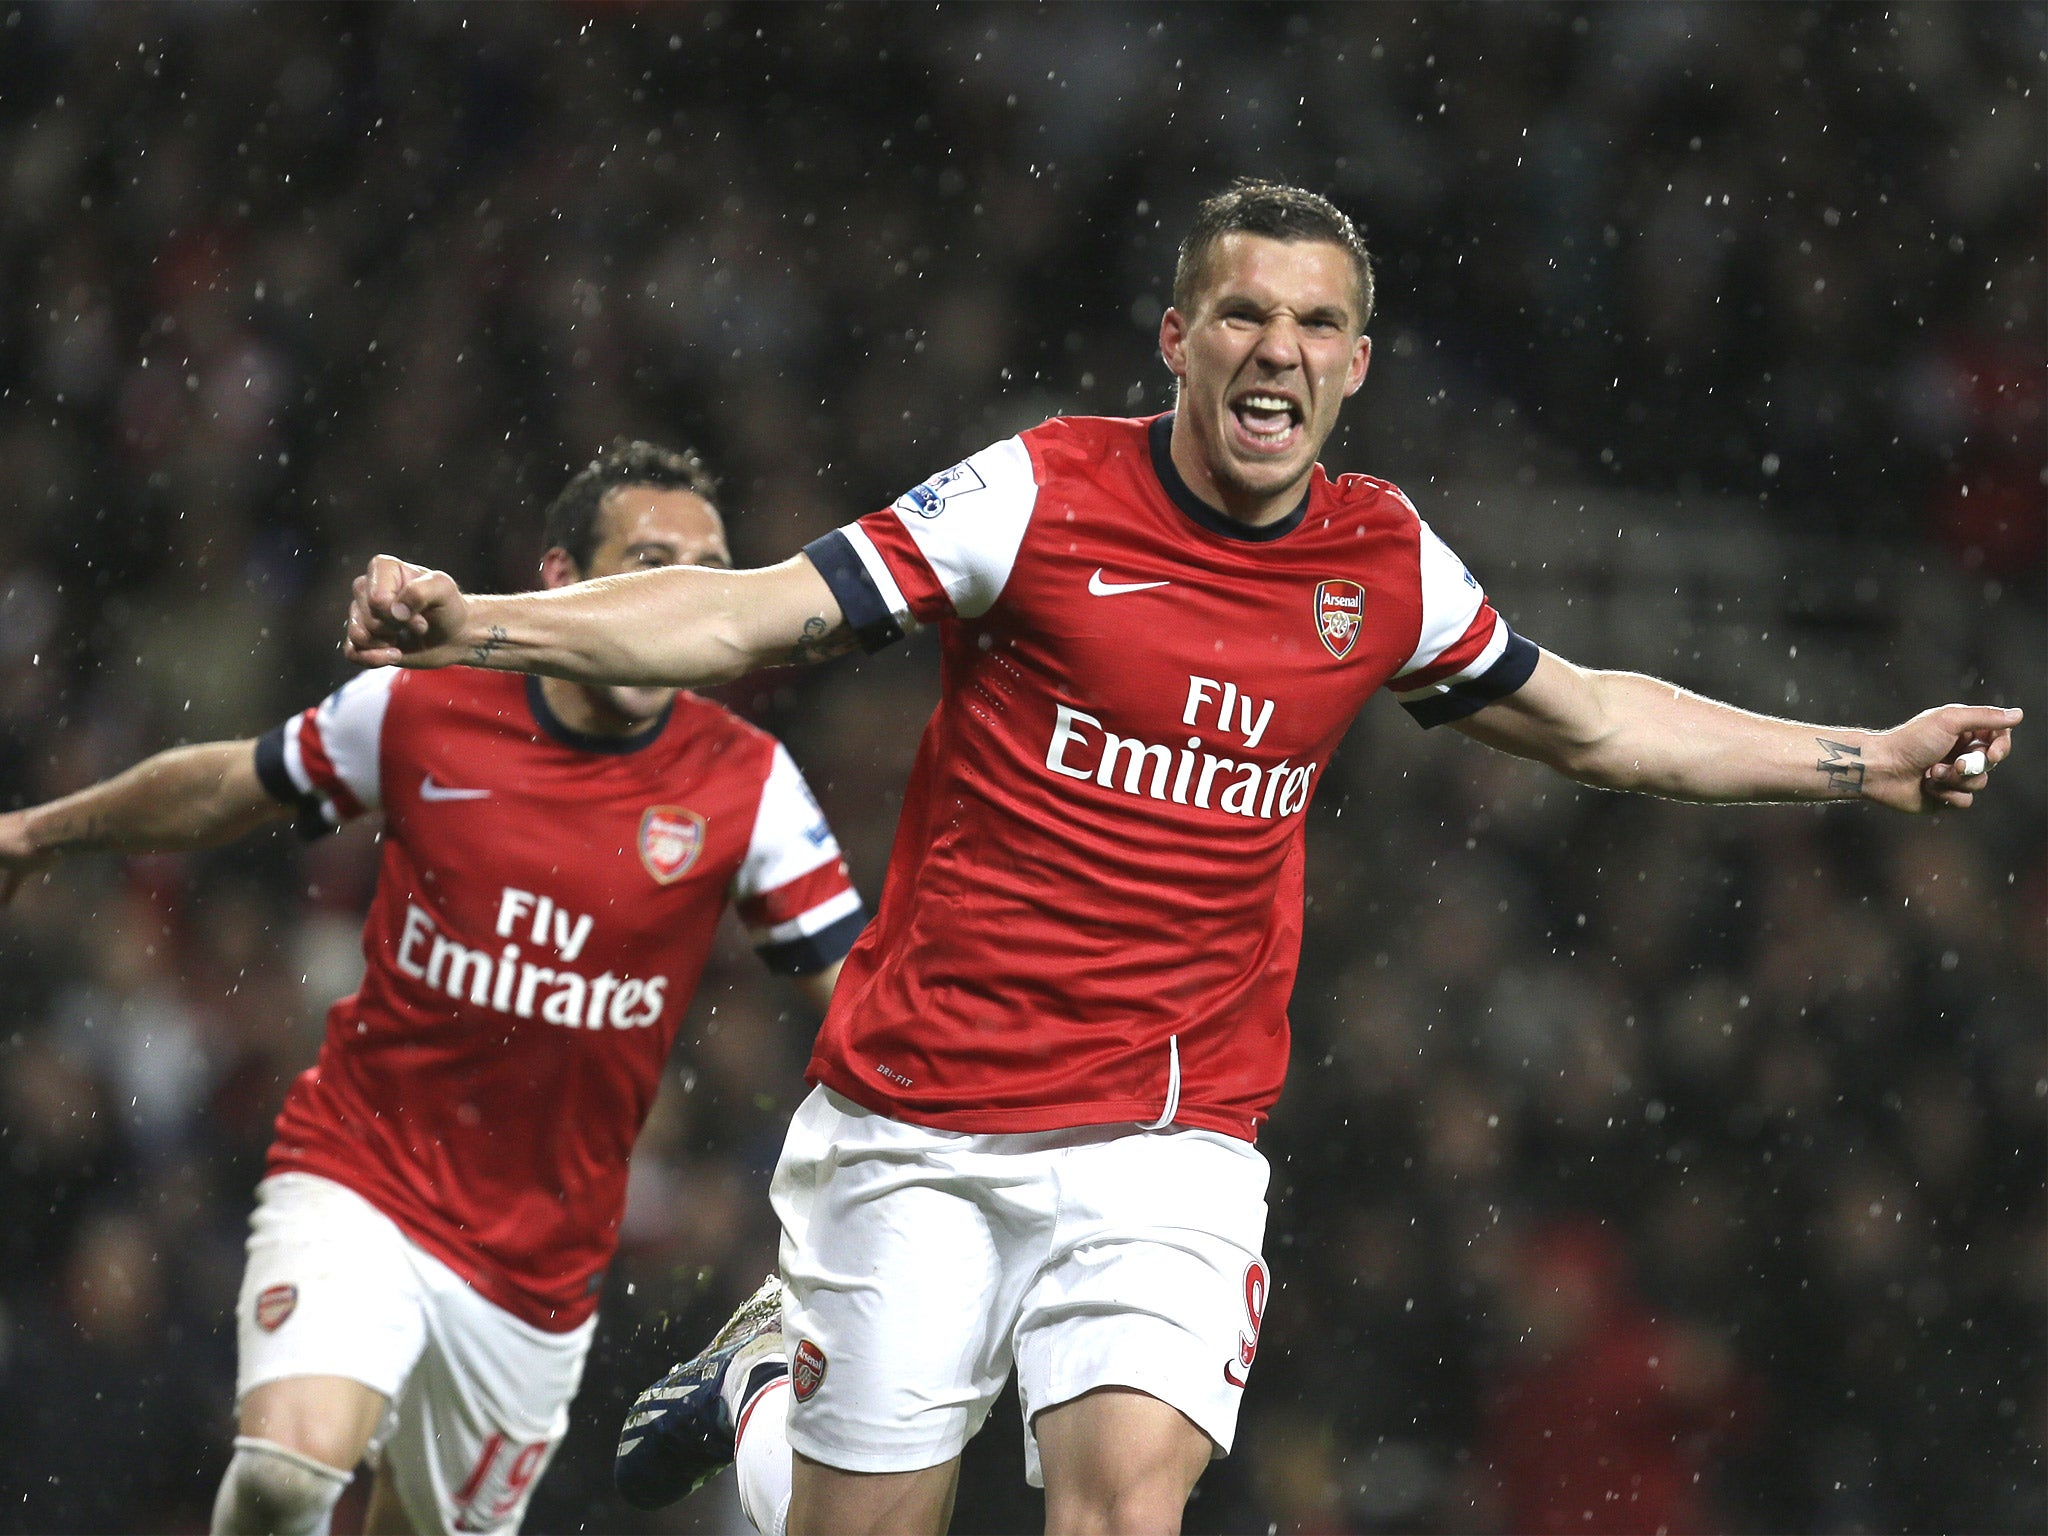 Lukas Podolski puts Arsenal ahead of personal glory | The ...